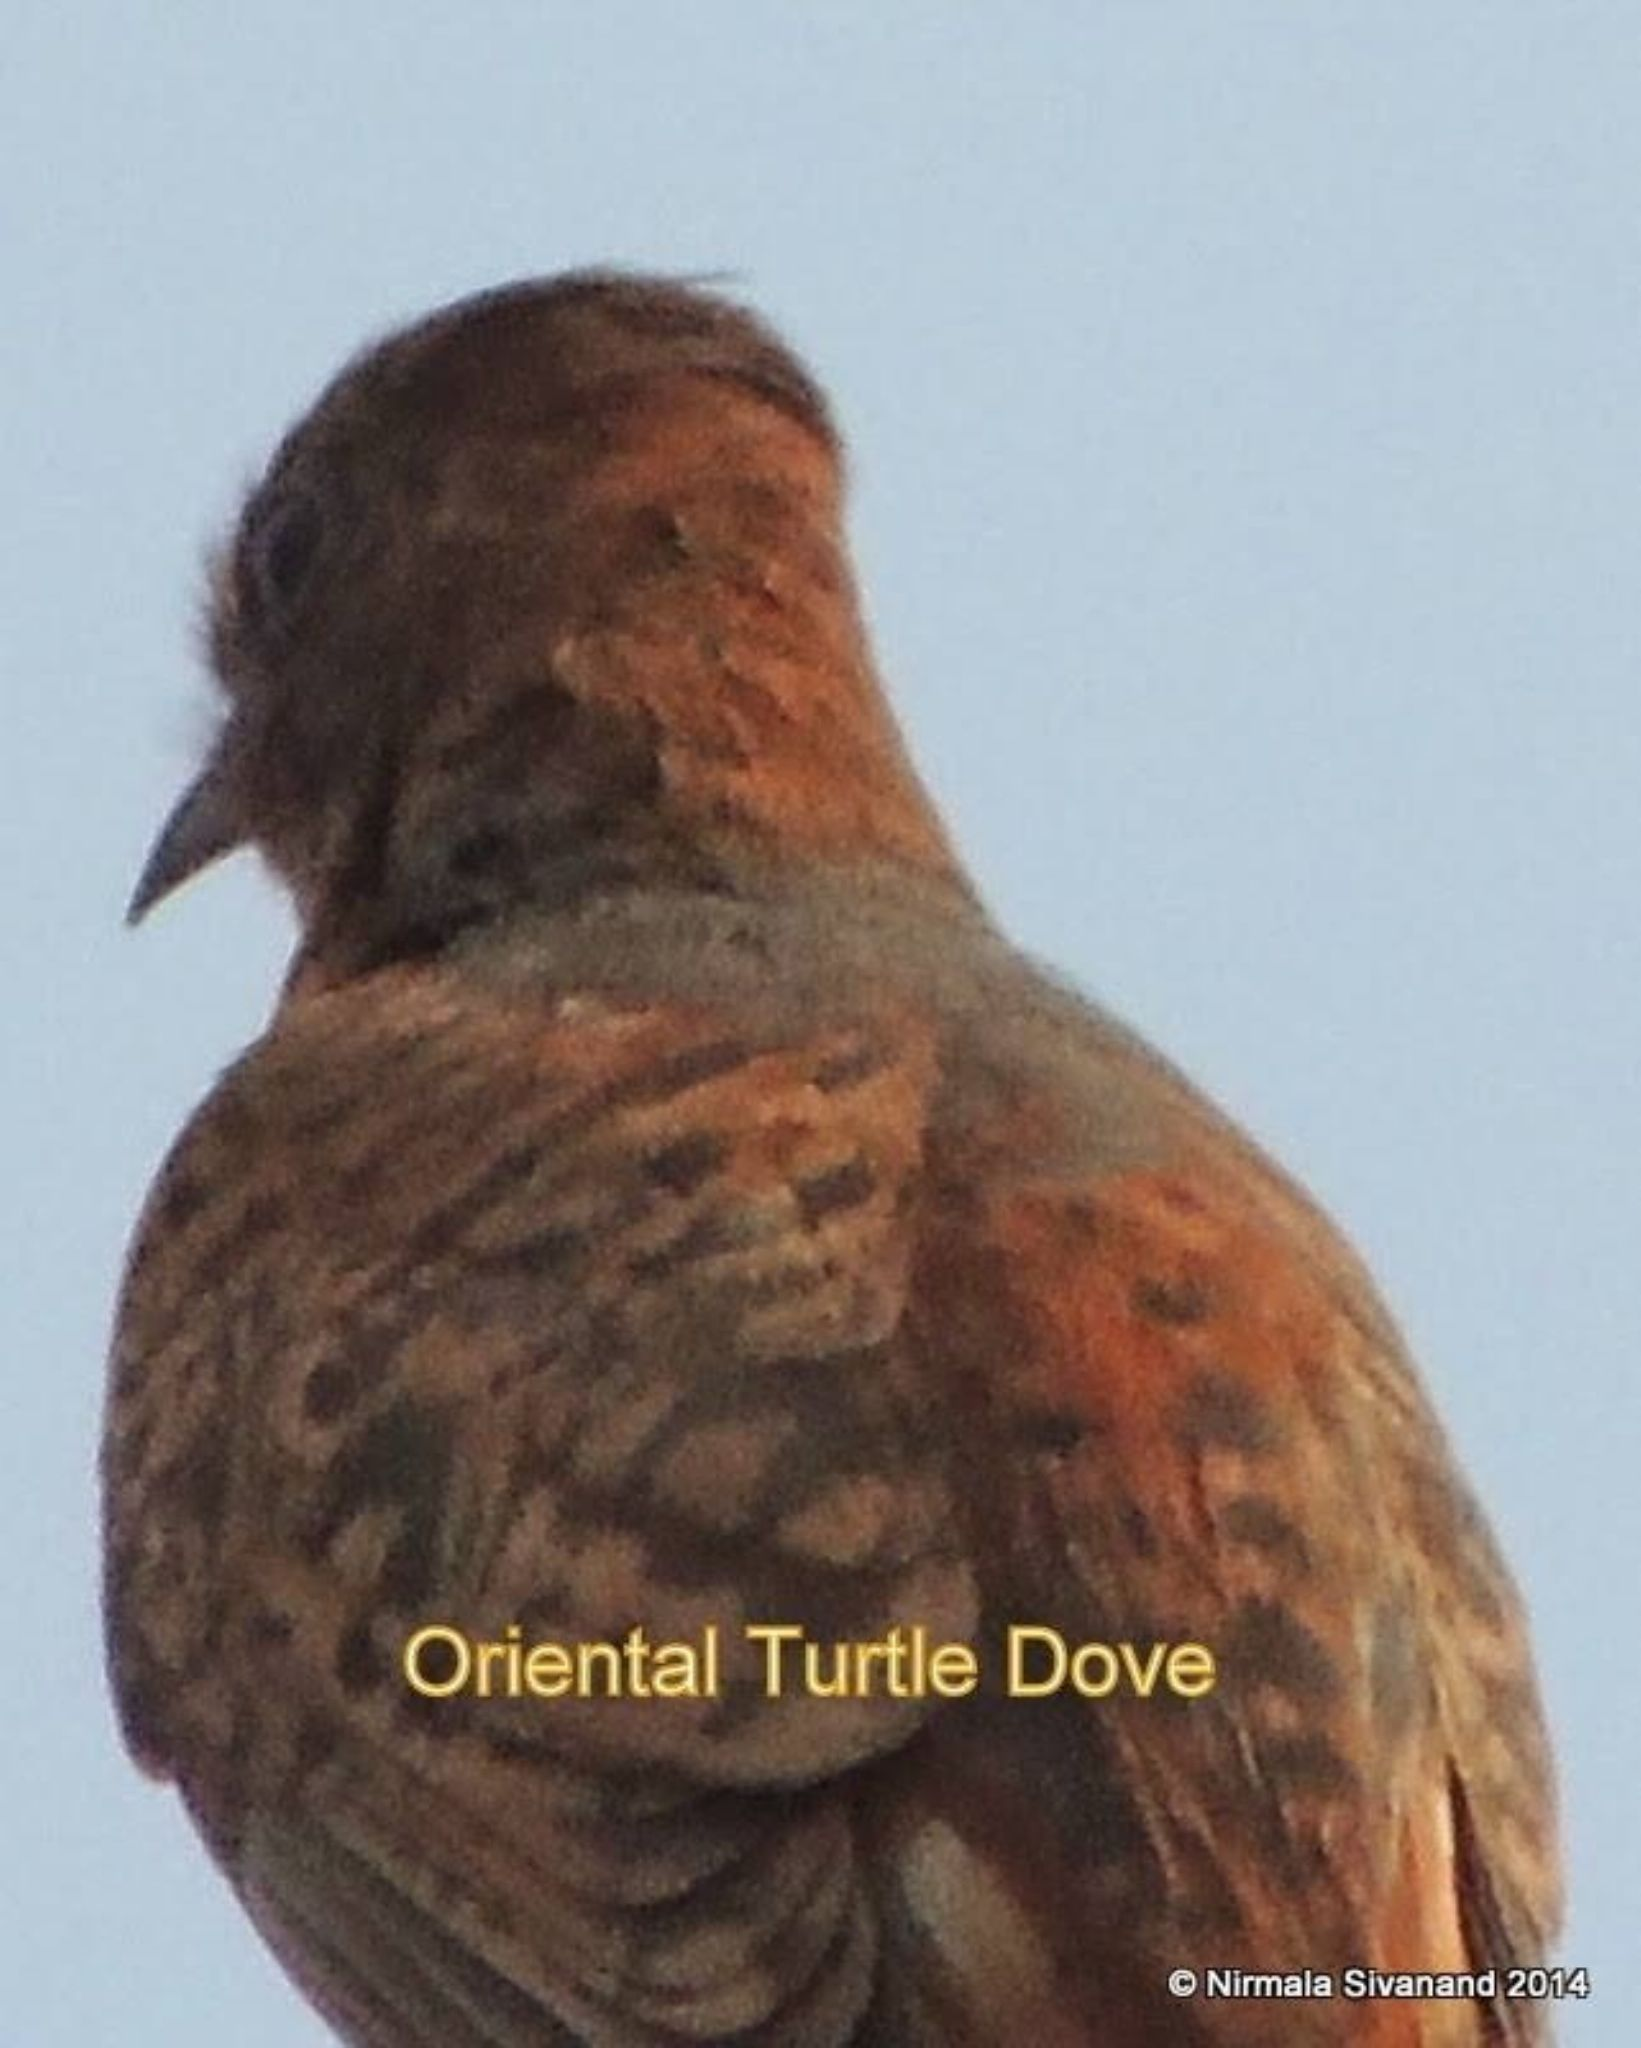 Oriental turtle dove by Nirmala Sivanand